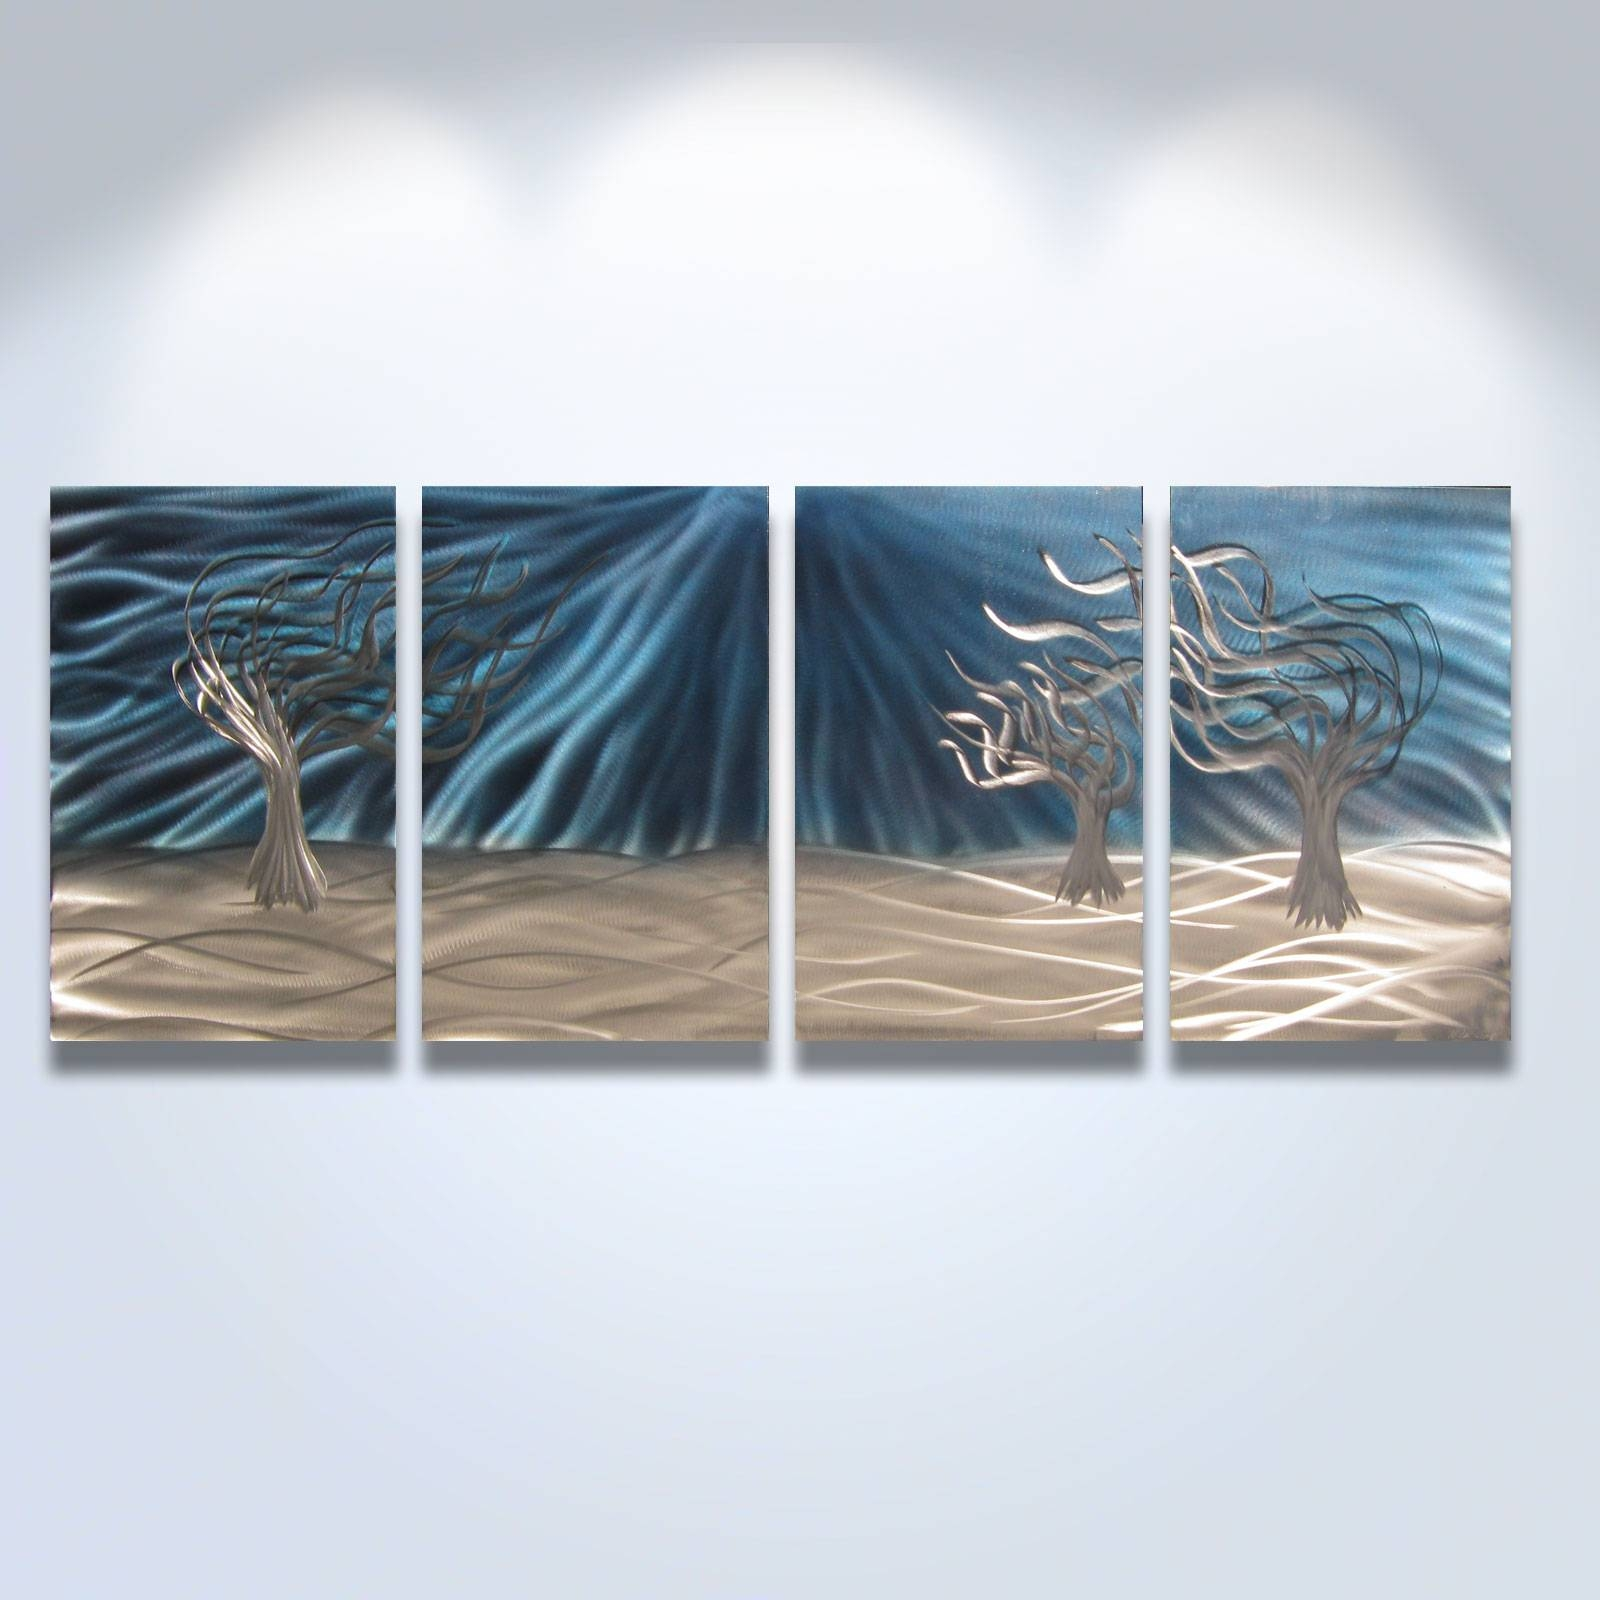 3 Trees Blue – Abstract Metal Wall Art Contemporary Modern Decor Within Latest 3 Piece Metal Wall Art (View 3 of 20)